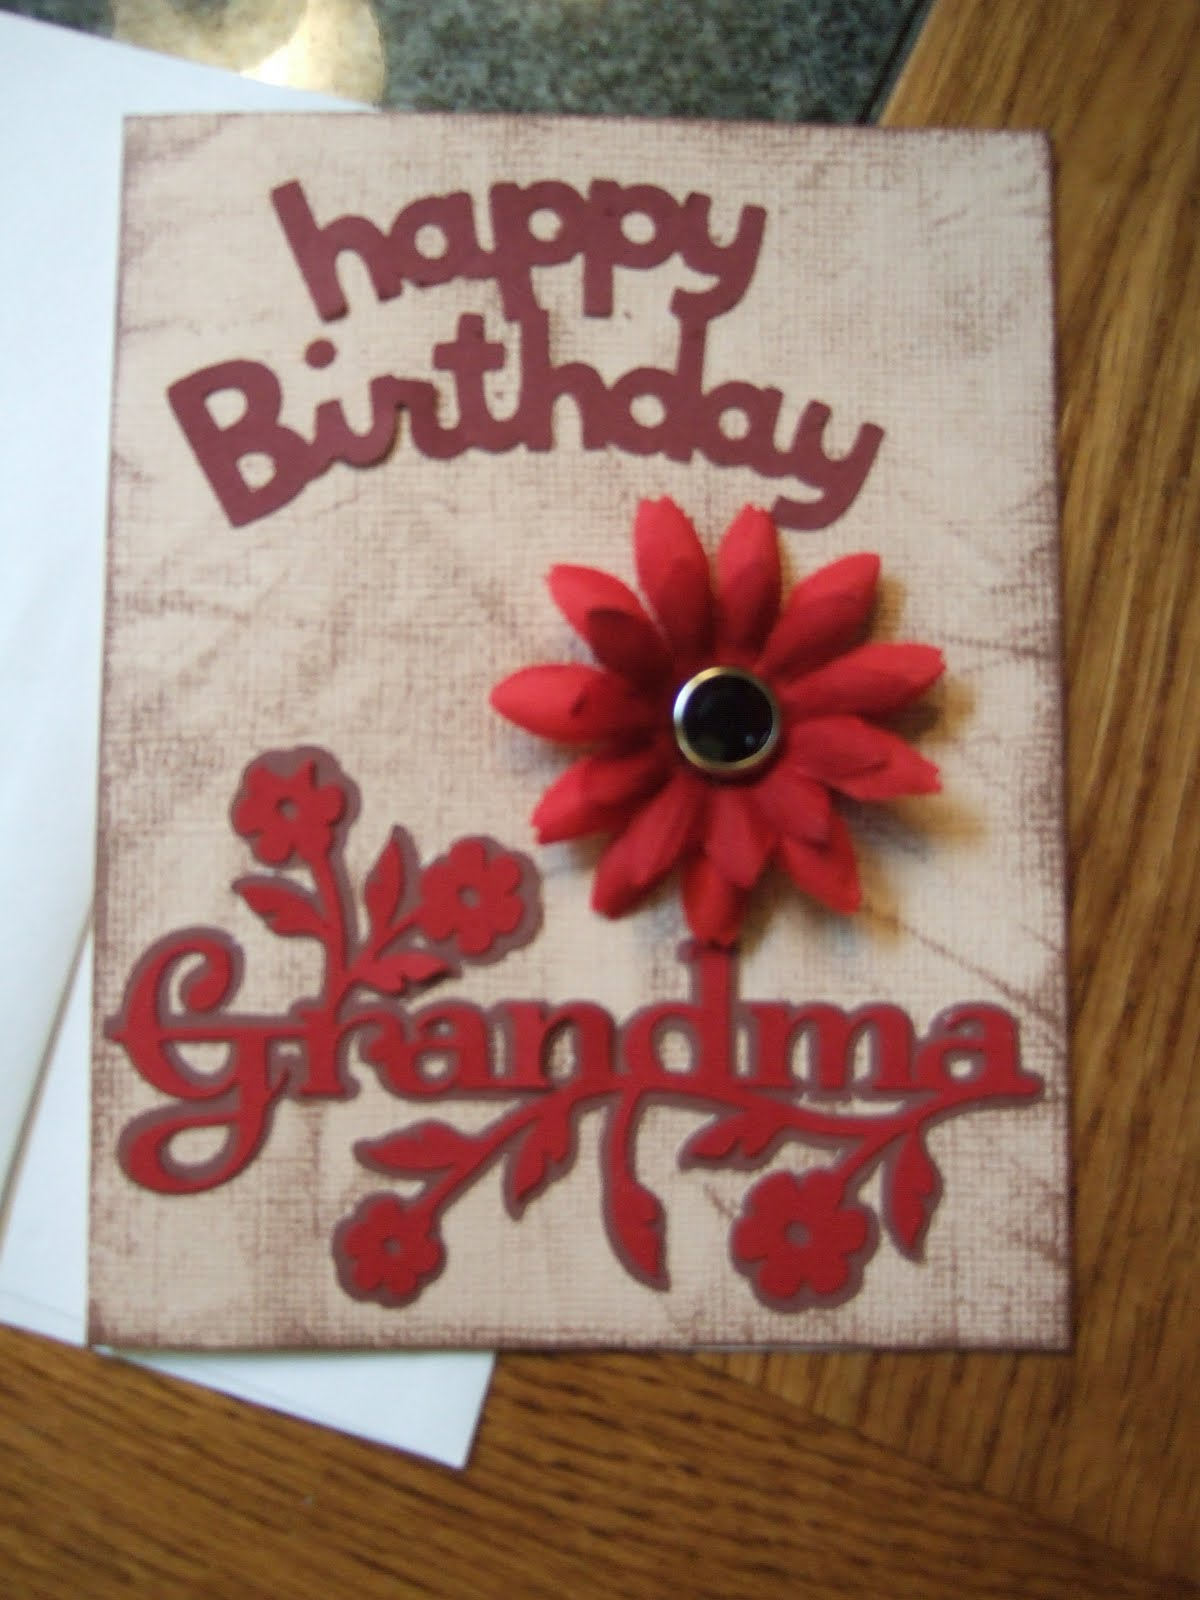 Pocket Of Birthday grandmother